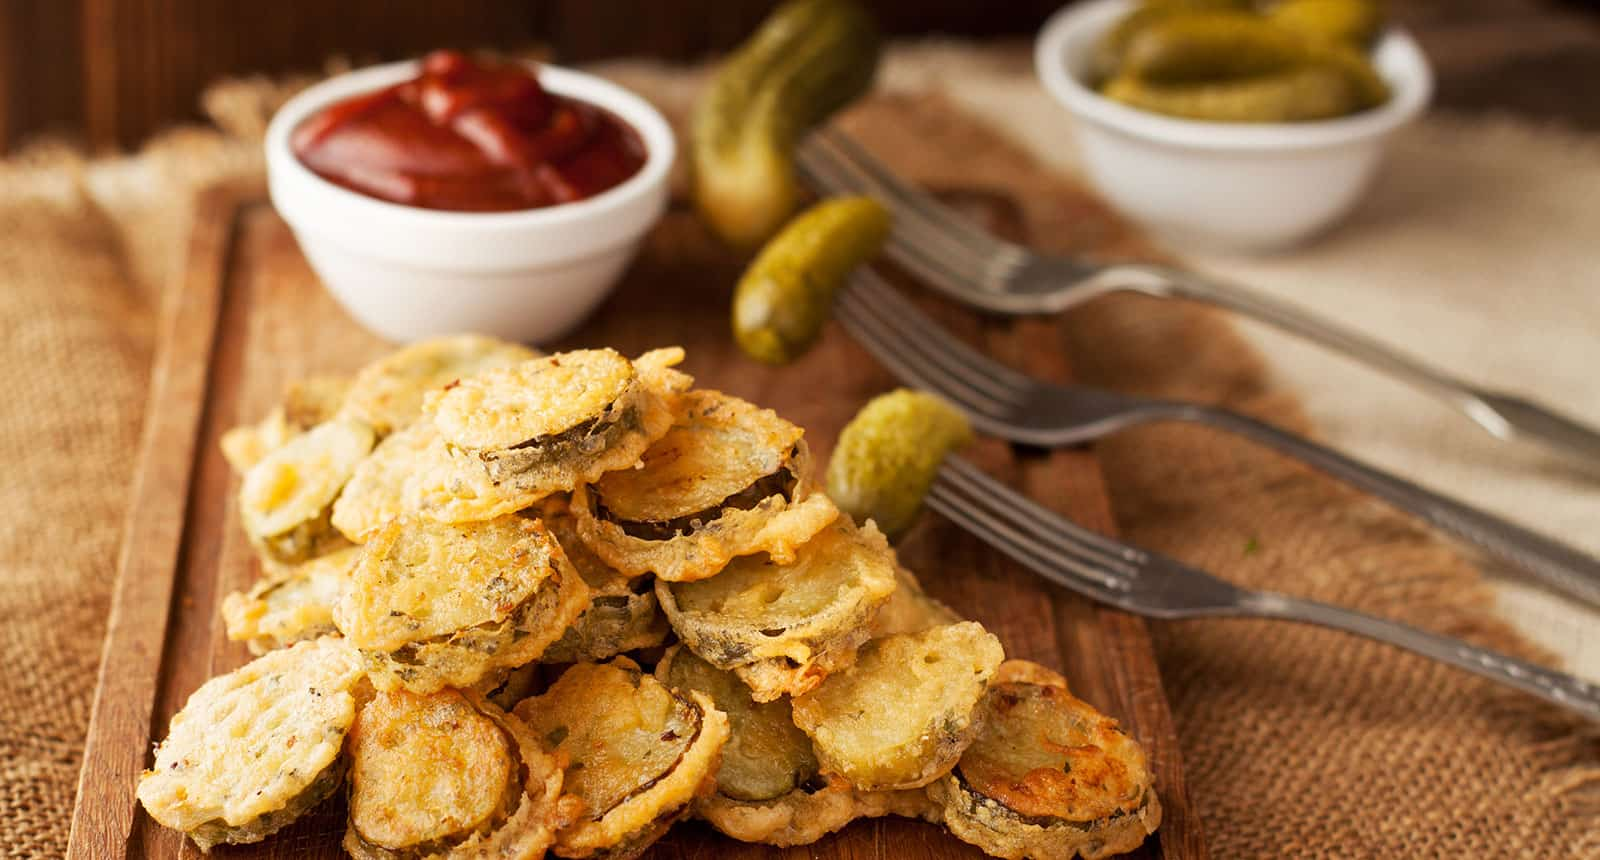 Fried Pickles Ketchup